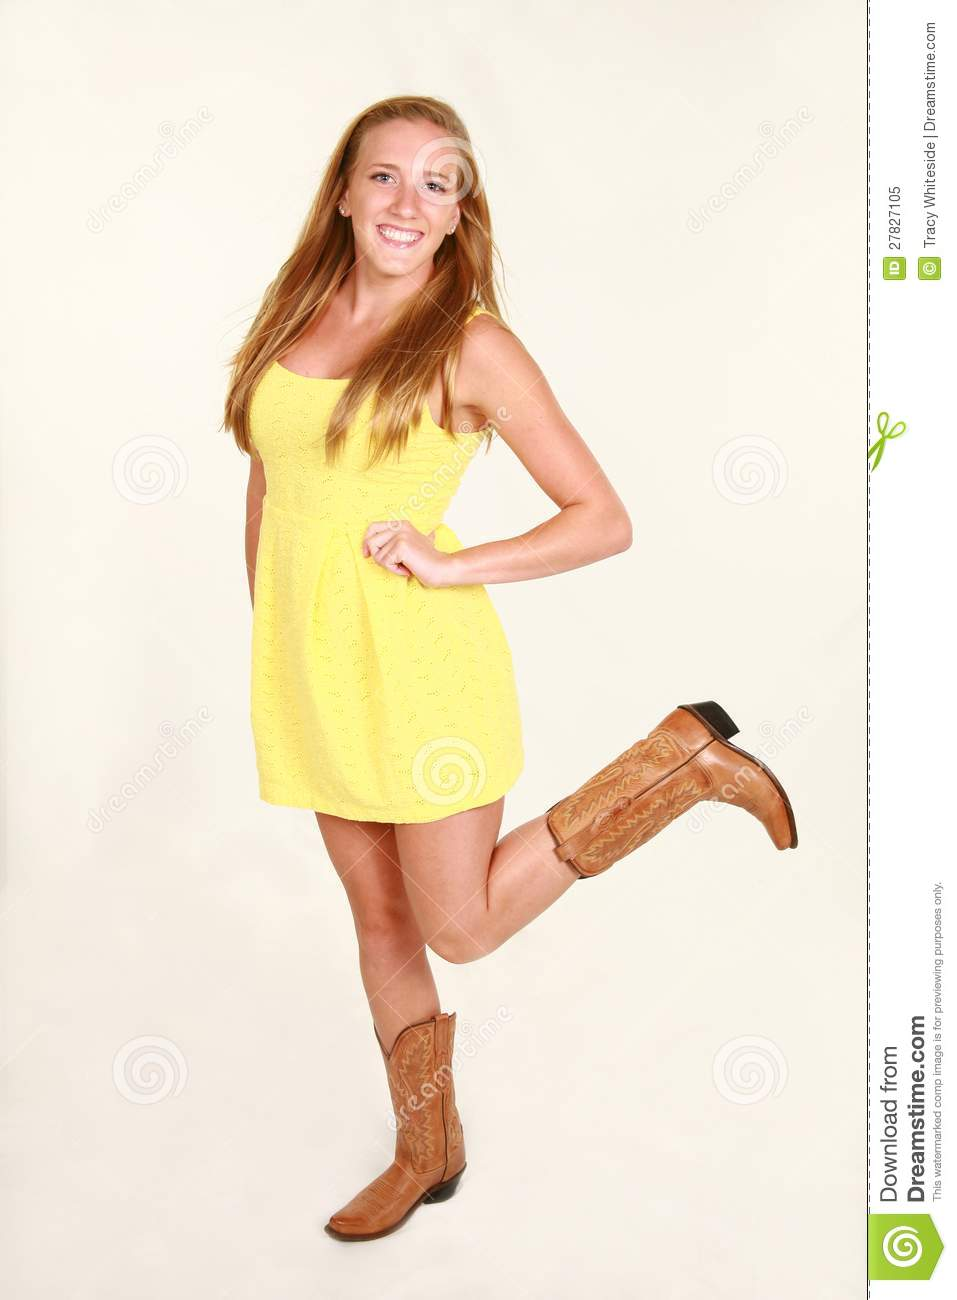 similar stock images of   Blond in yellow dress and cowboy boots